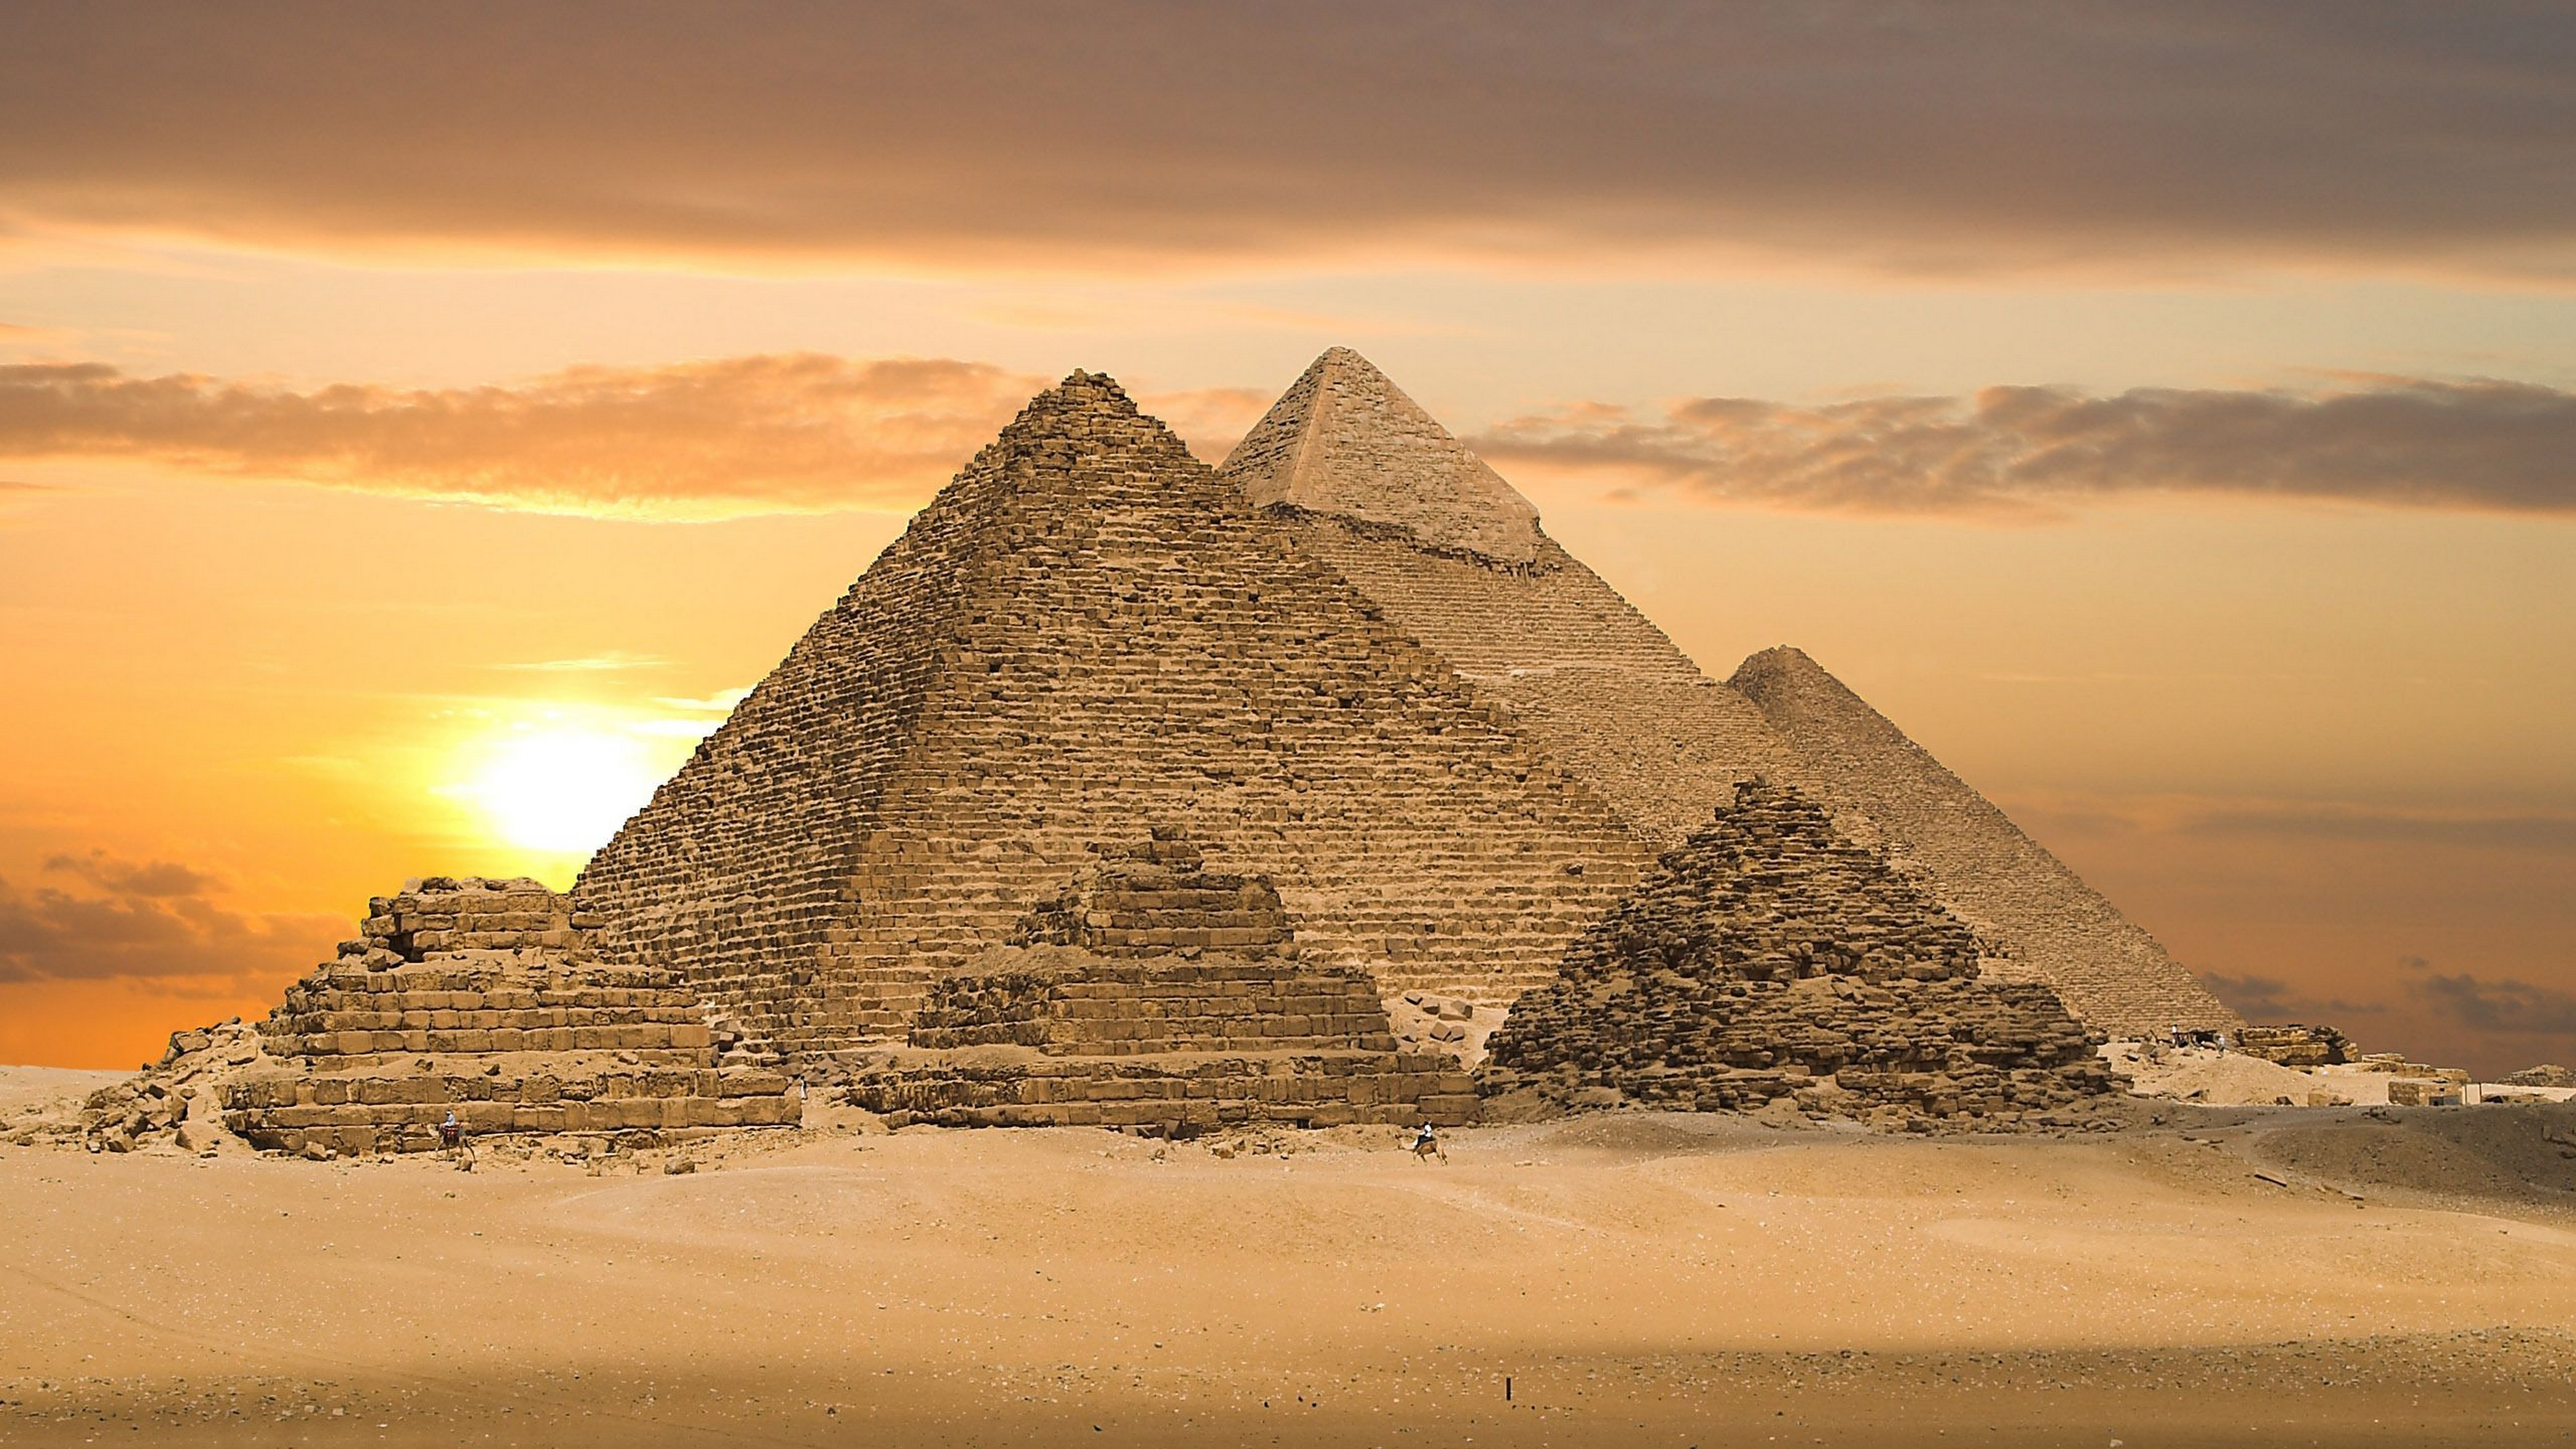 egyptian pyramids wallpaper 4k background